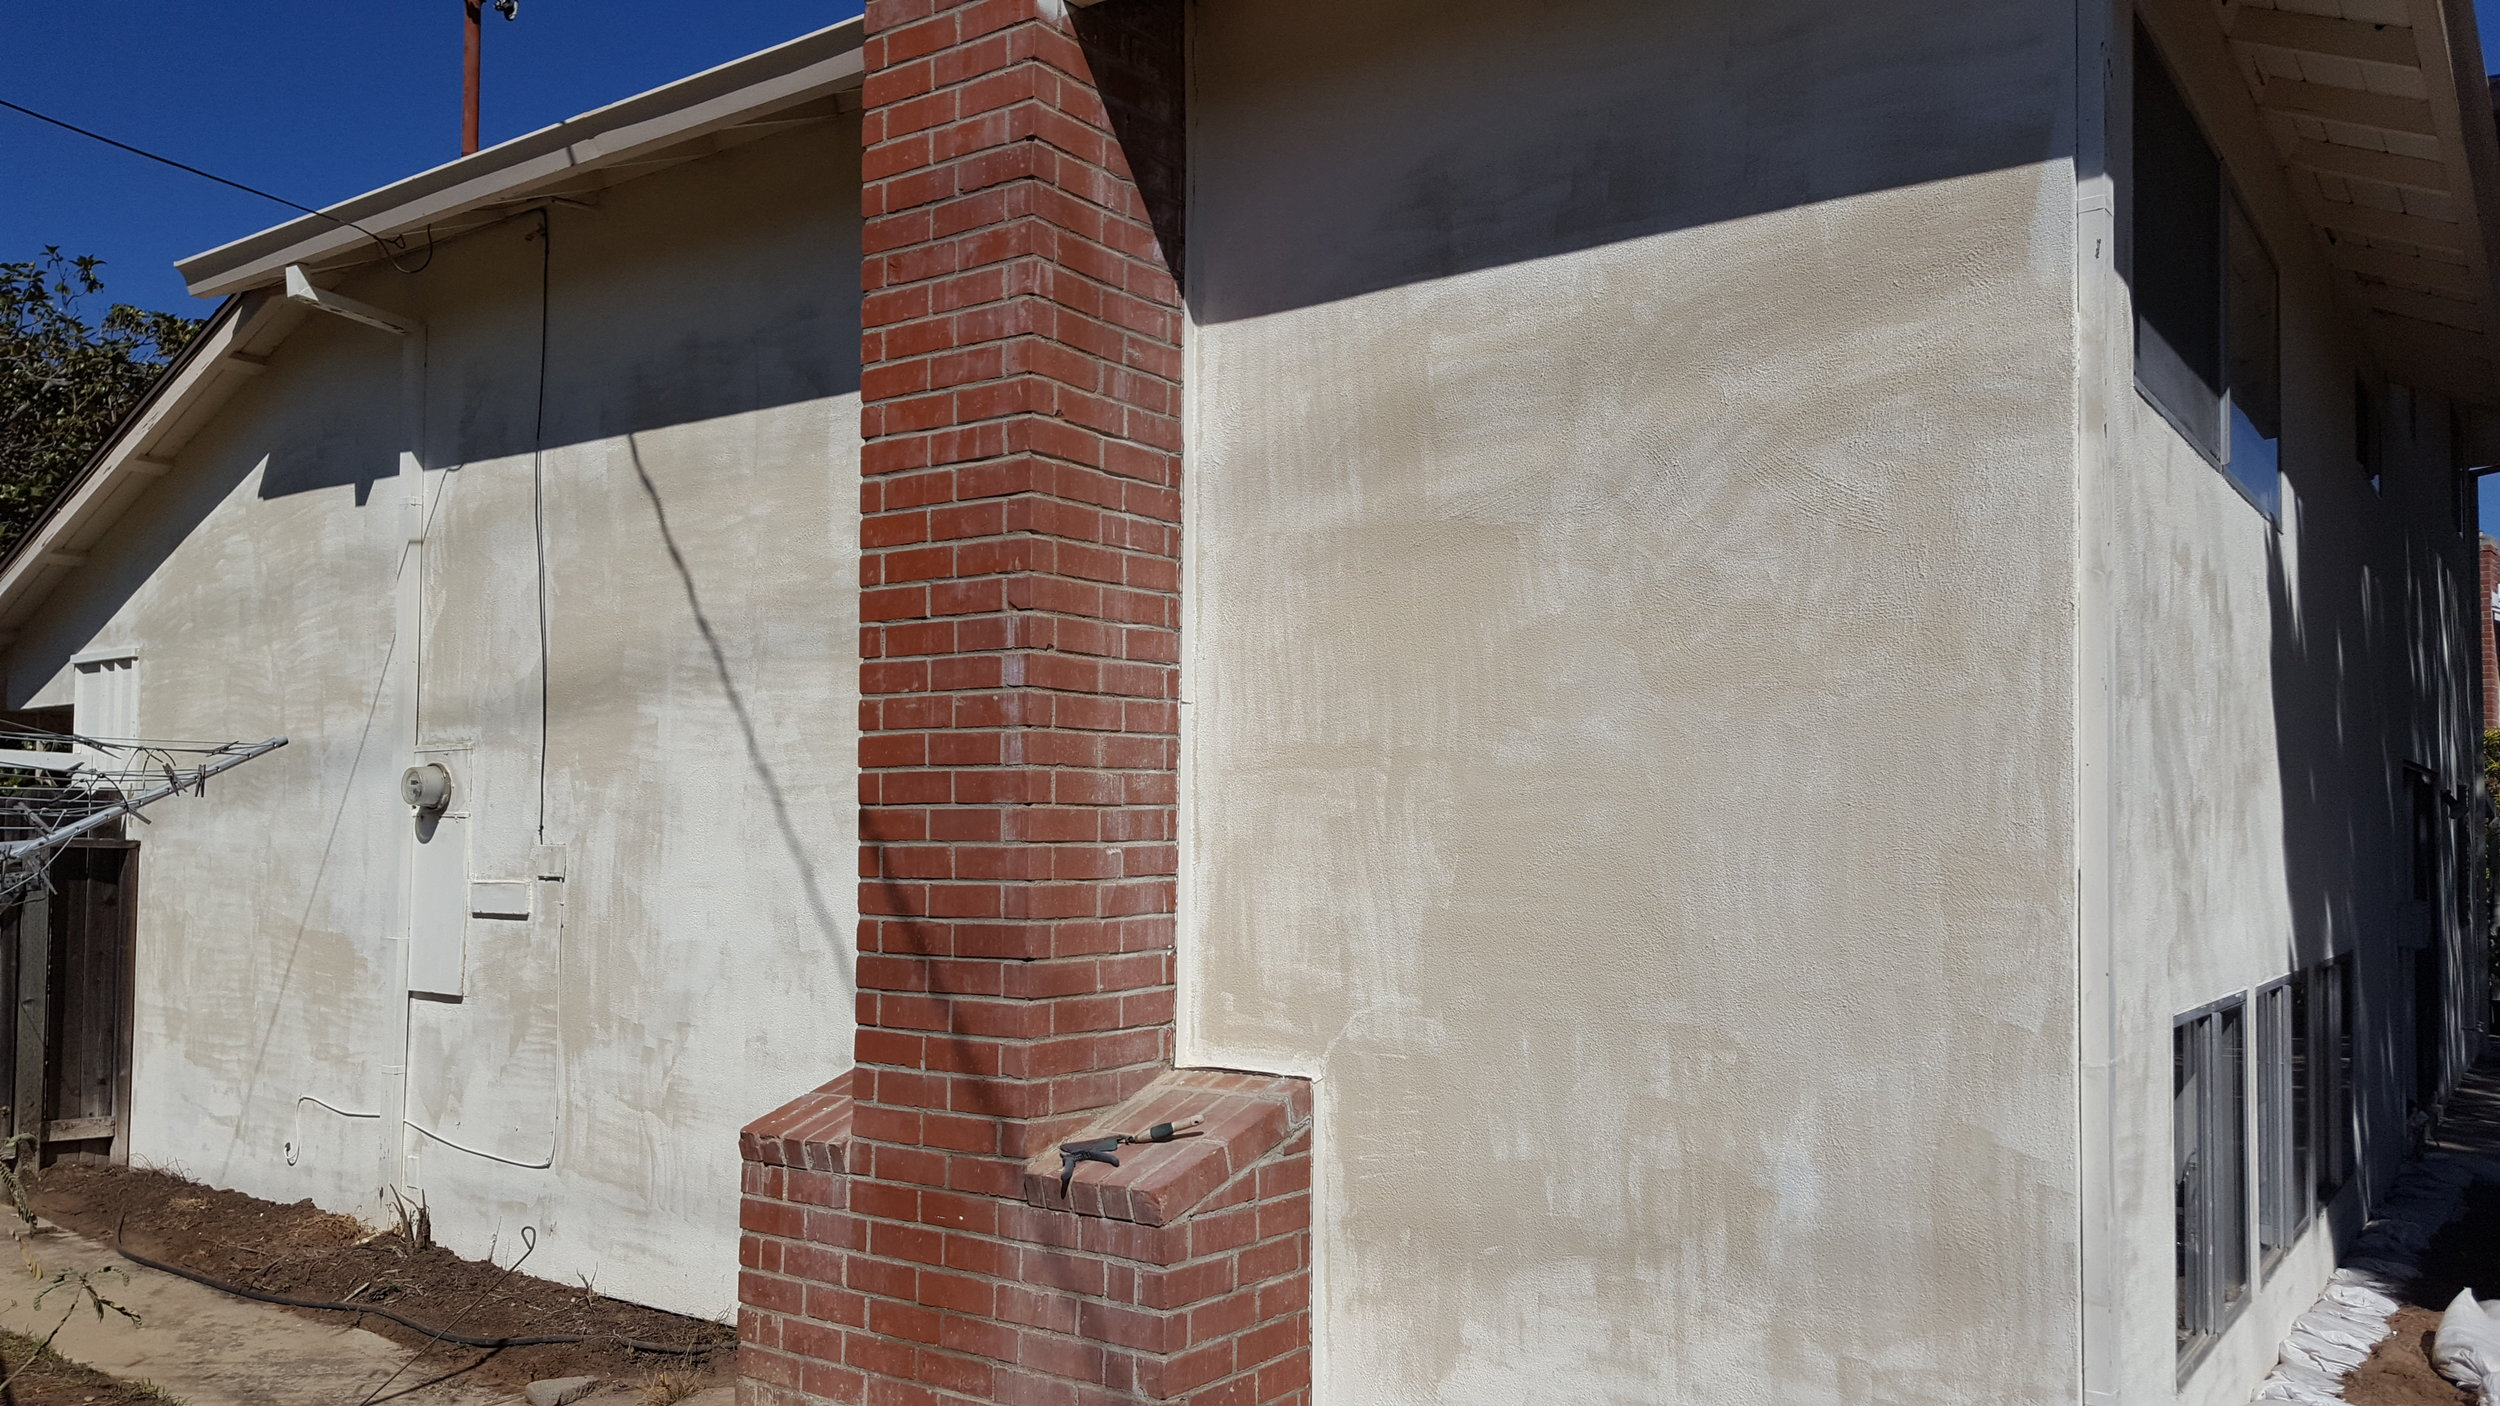 Stucco after pressure washing: ready to prime and paint!